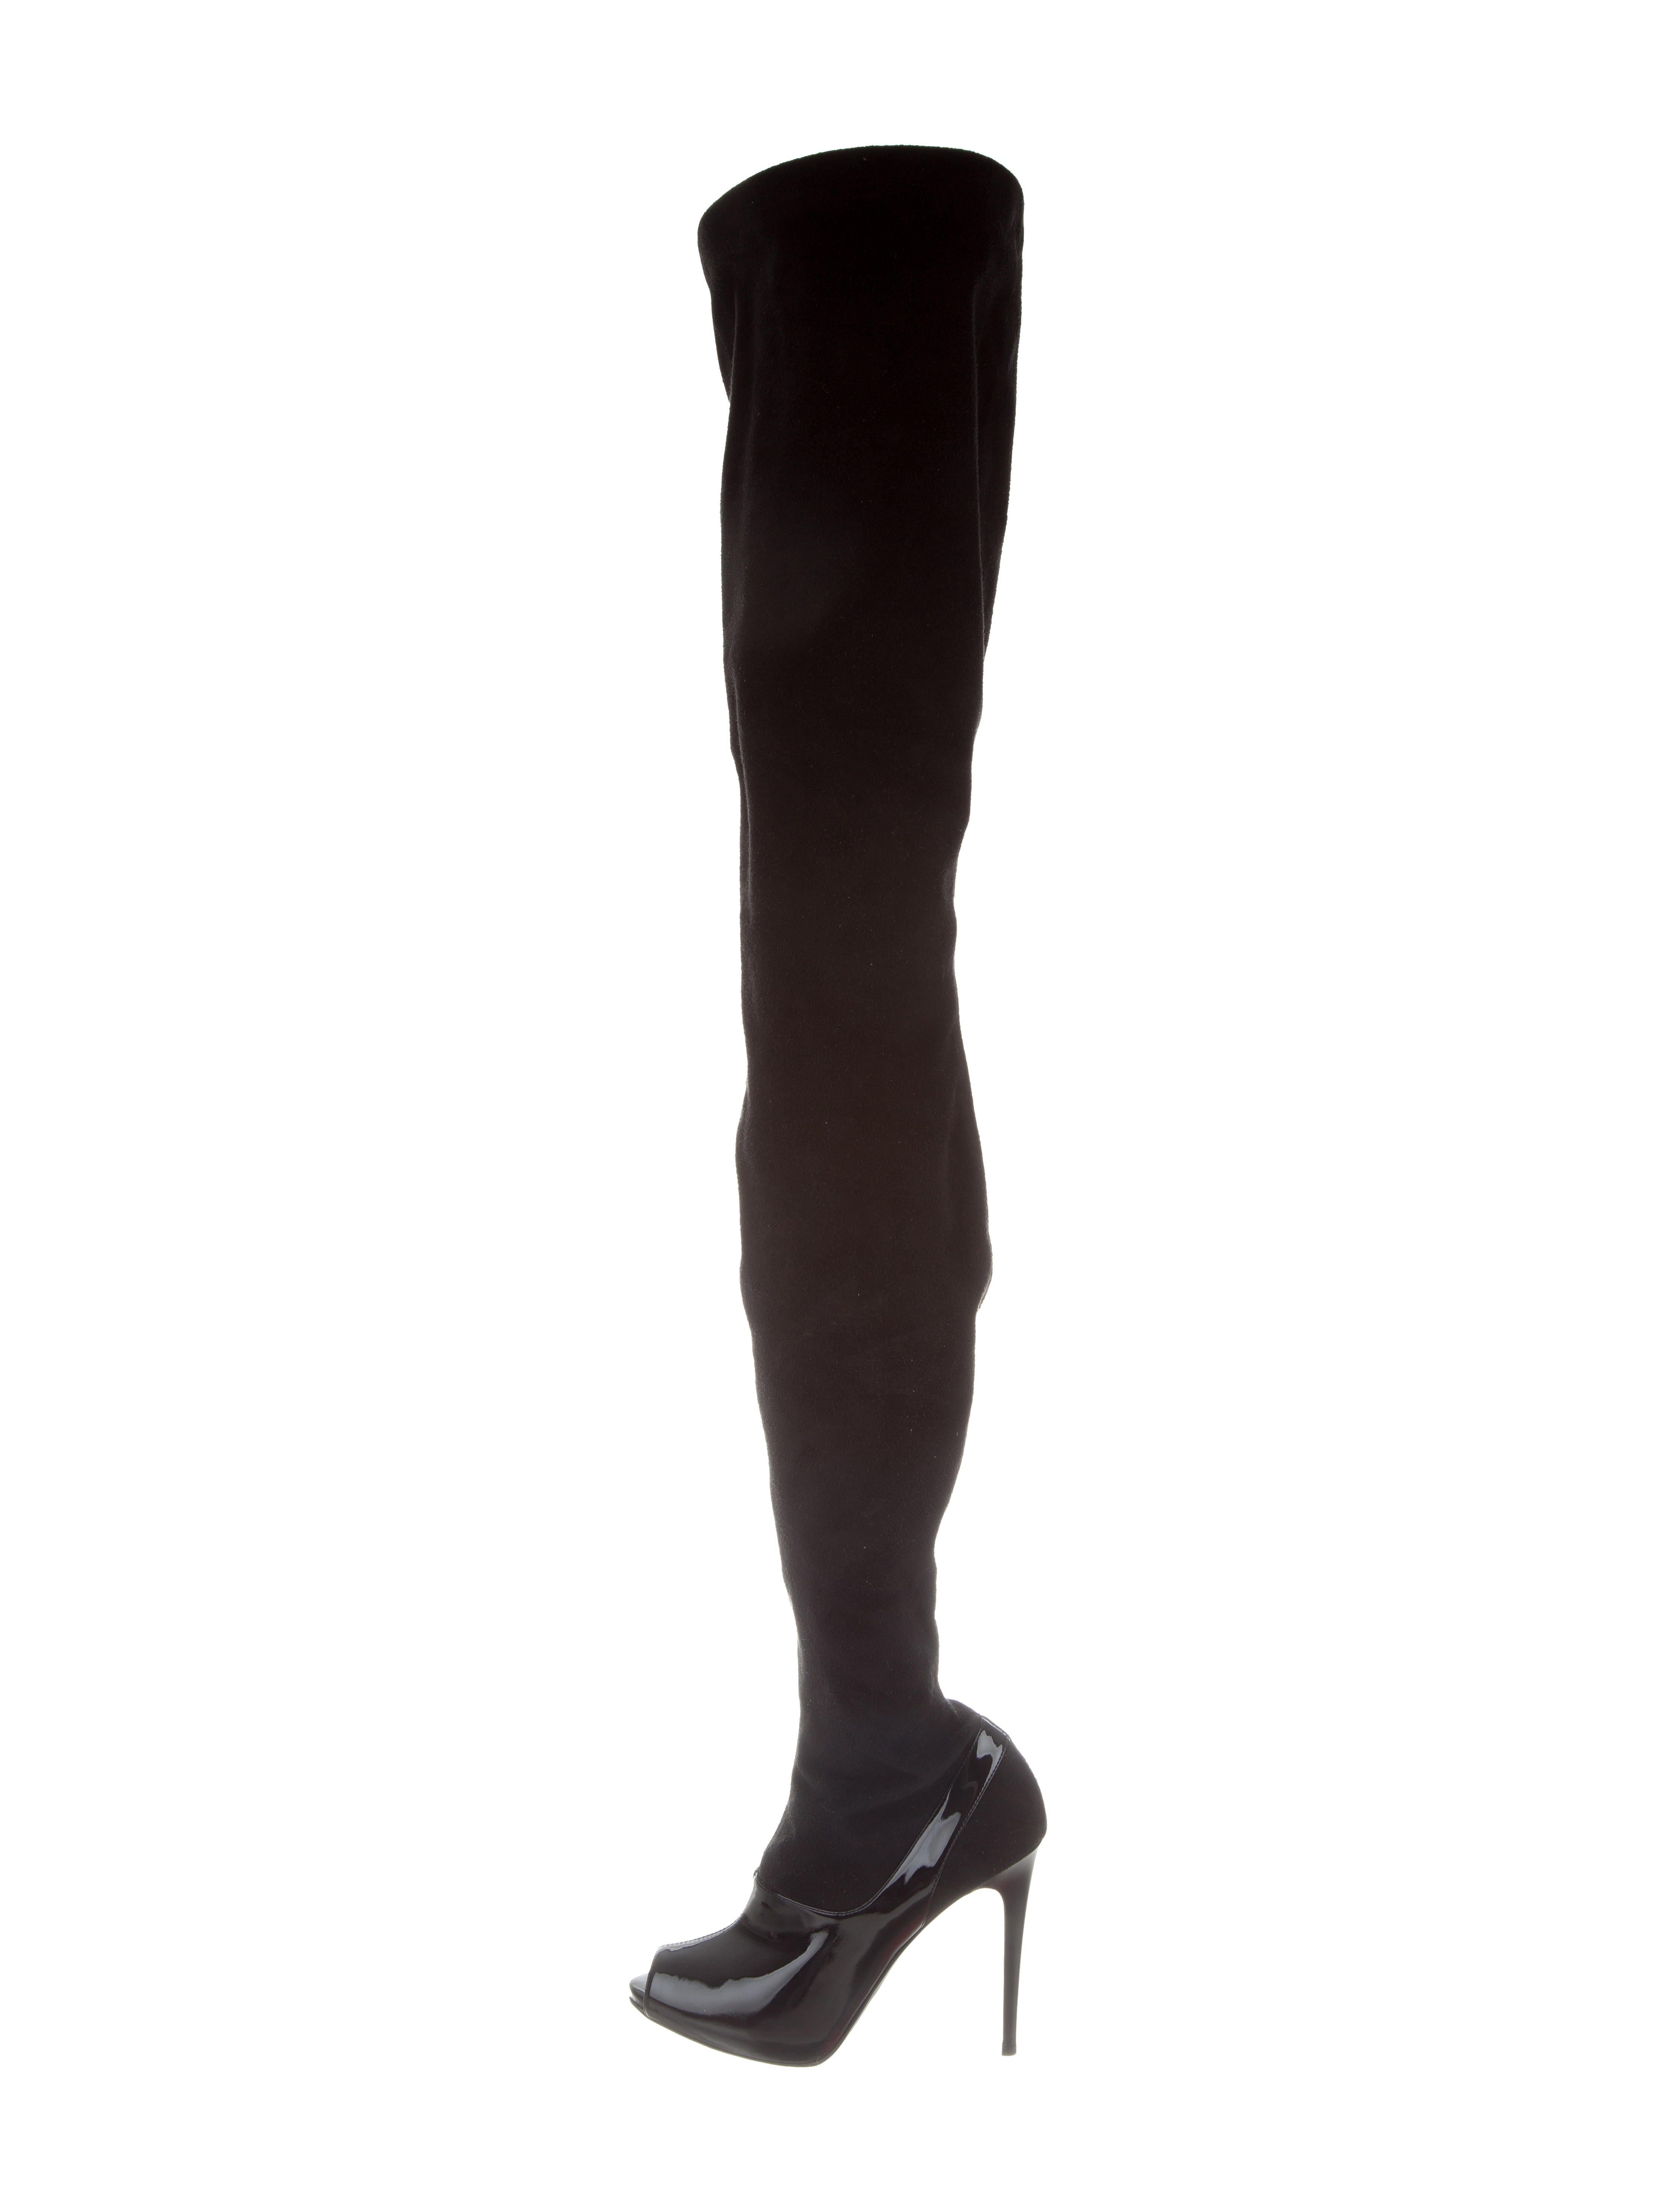 stella mccartney vegan suede thigh high boots shoes